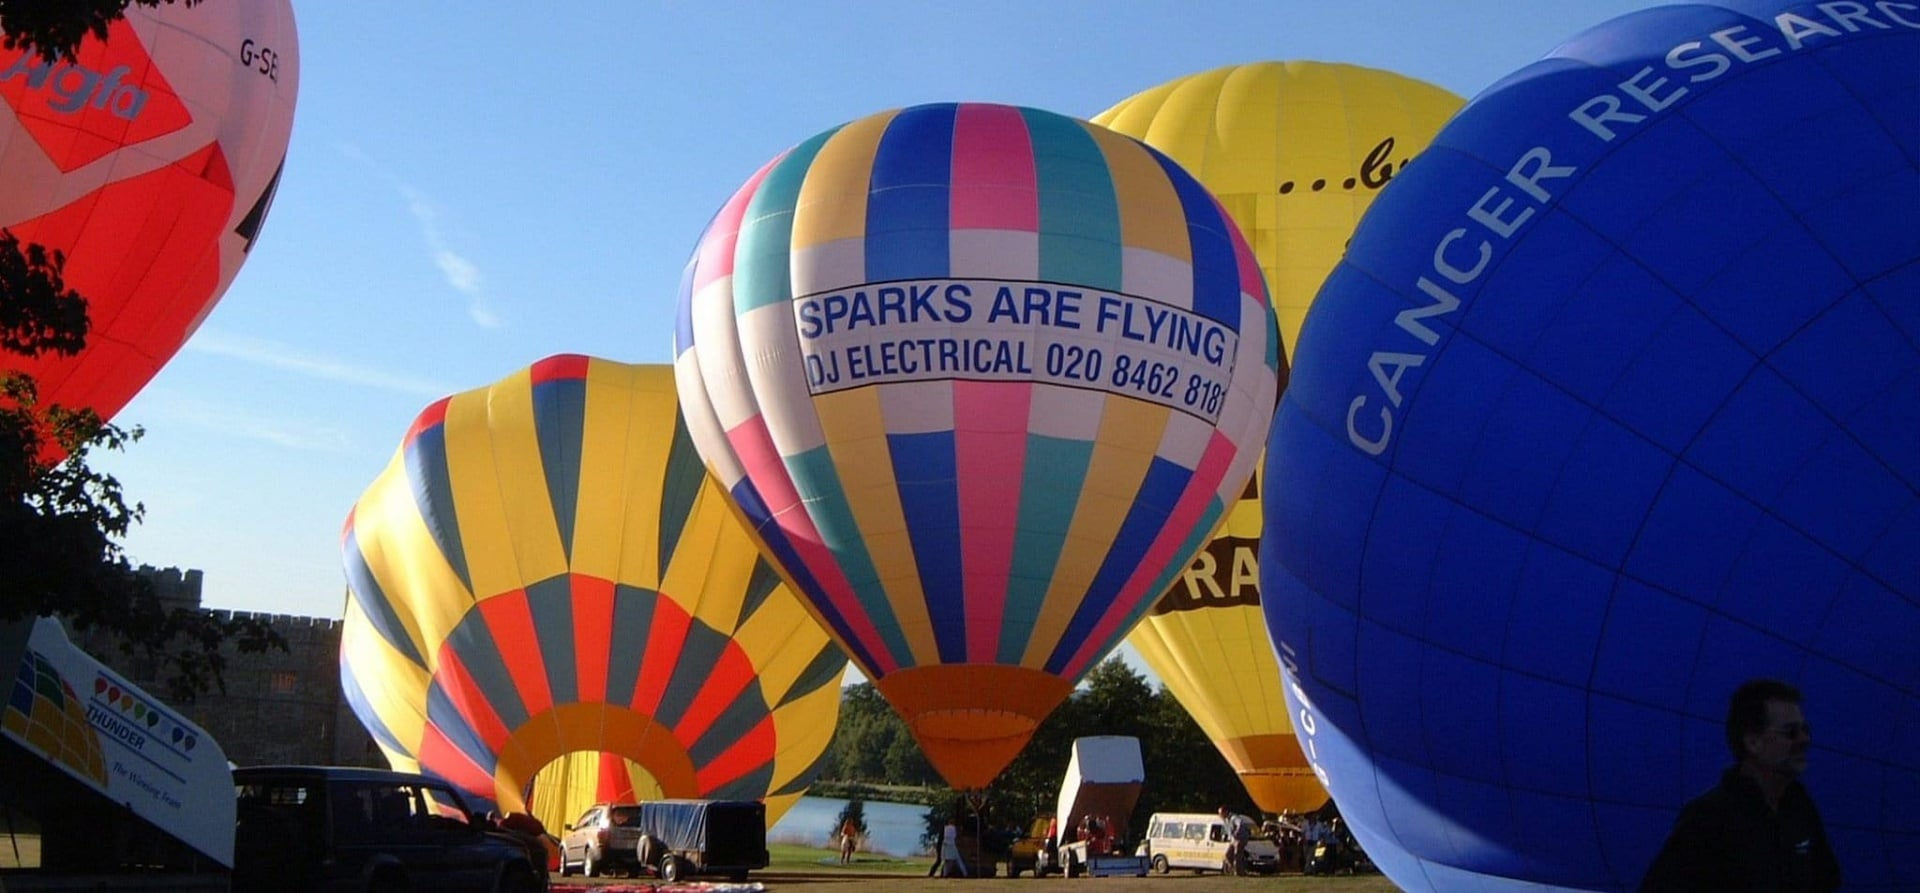 Weekday Sunrise Hot Air Balloon Flight For 2 People